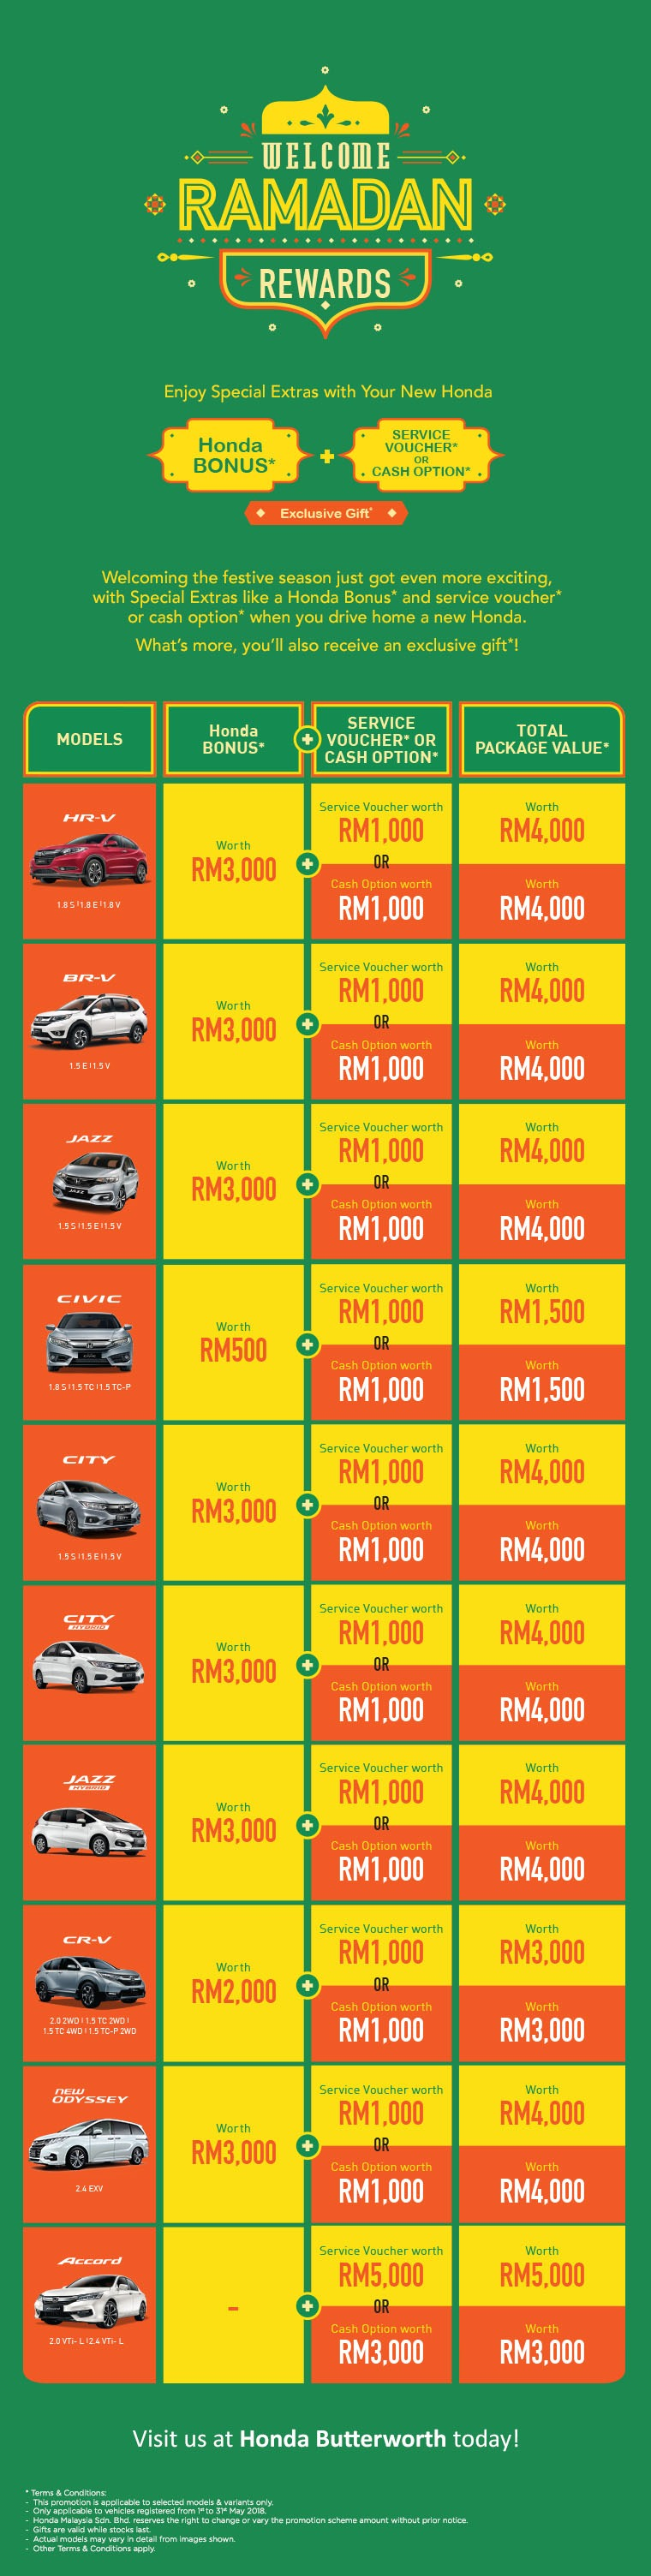 Honda welcome ramadan rewards